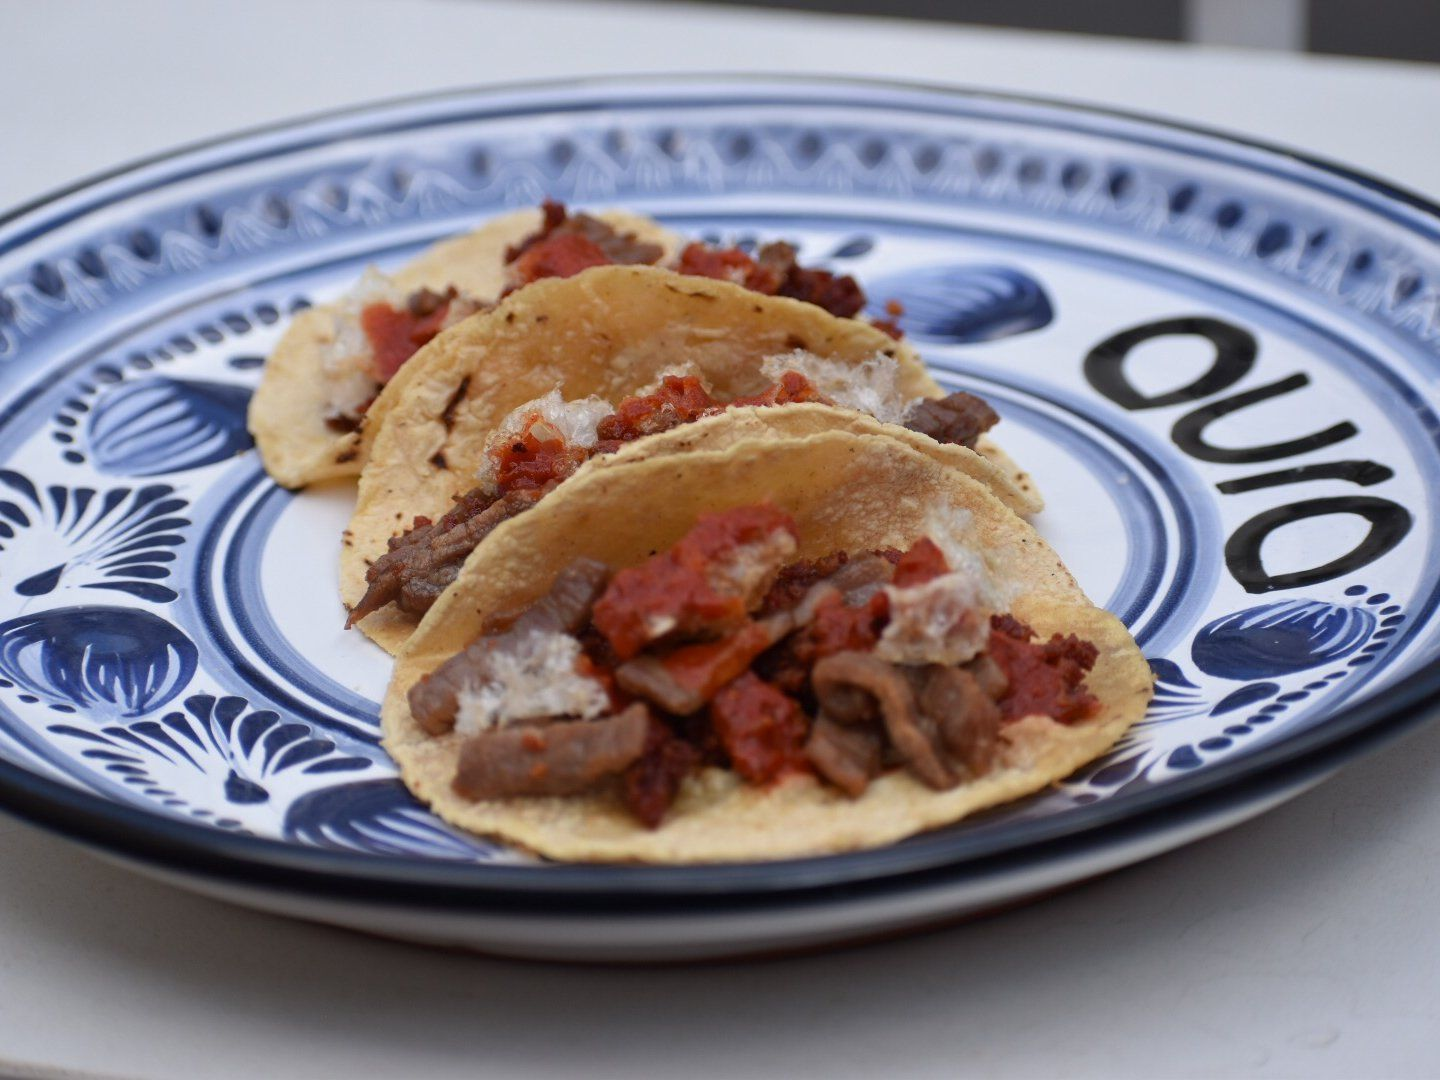 What does taco stand for in online dating